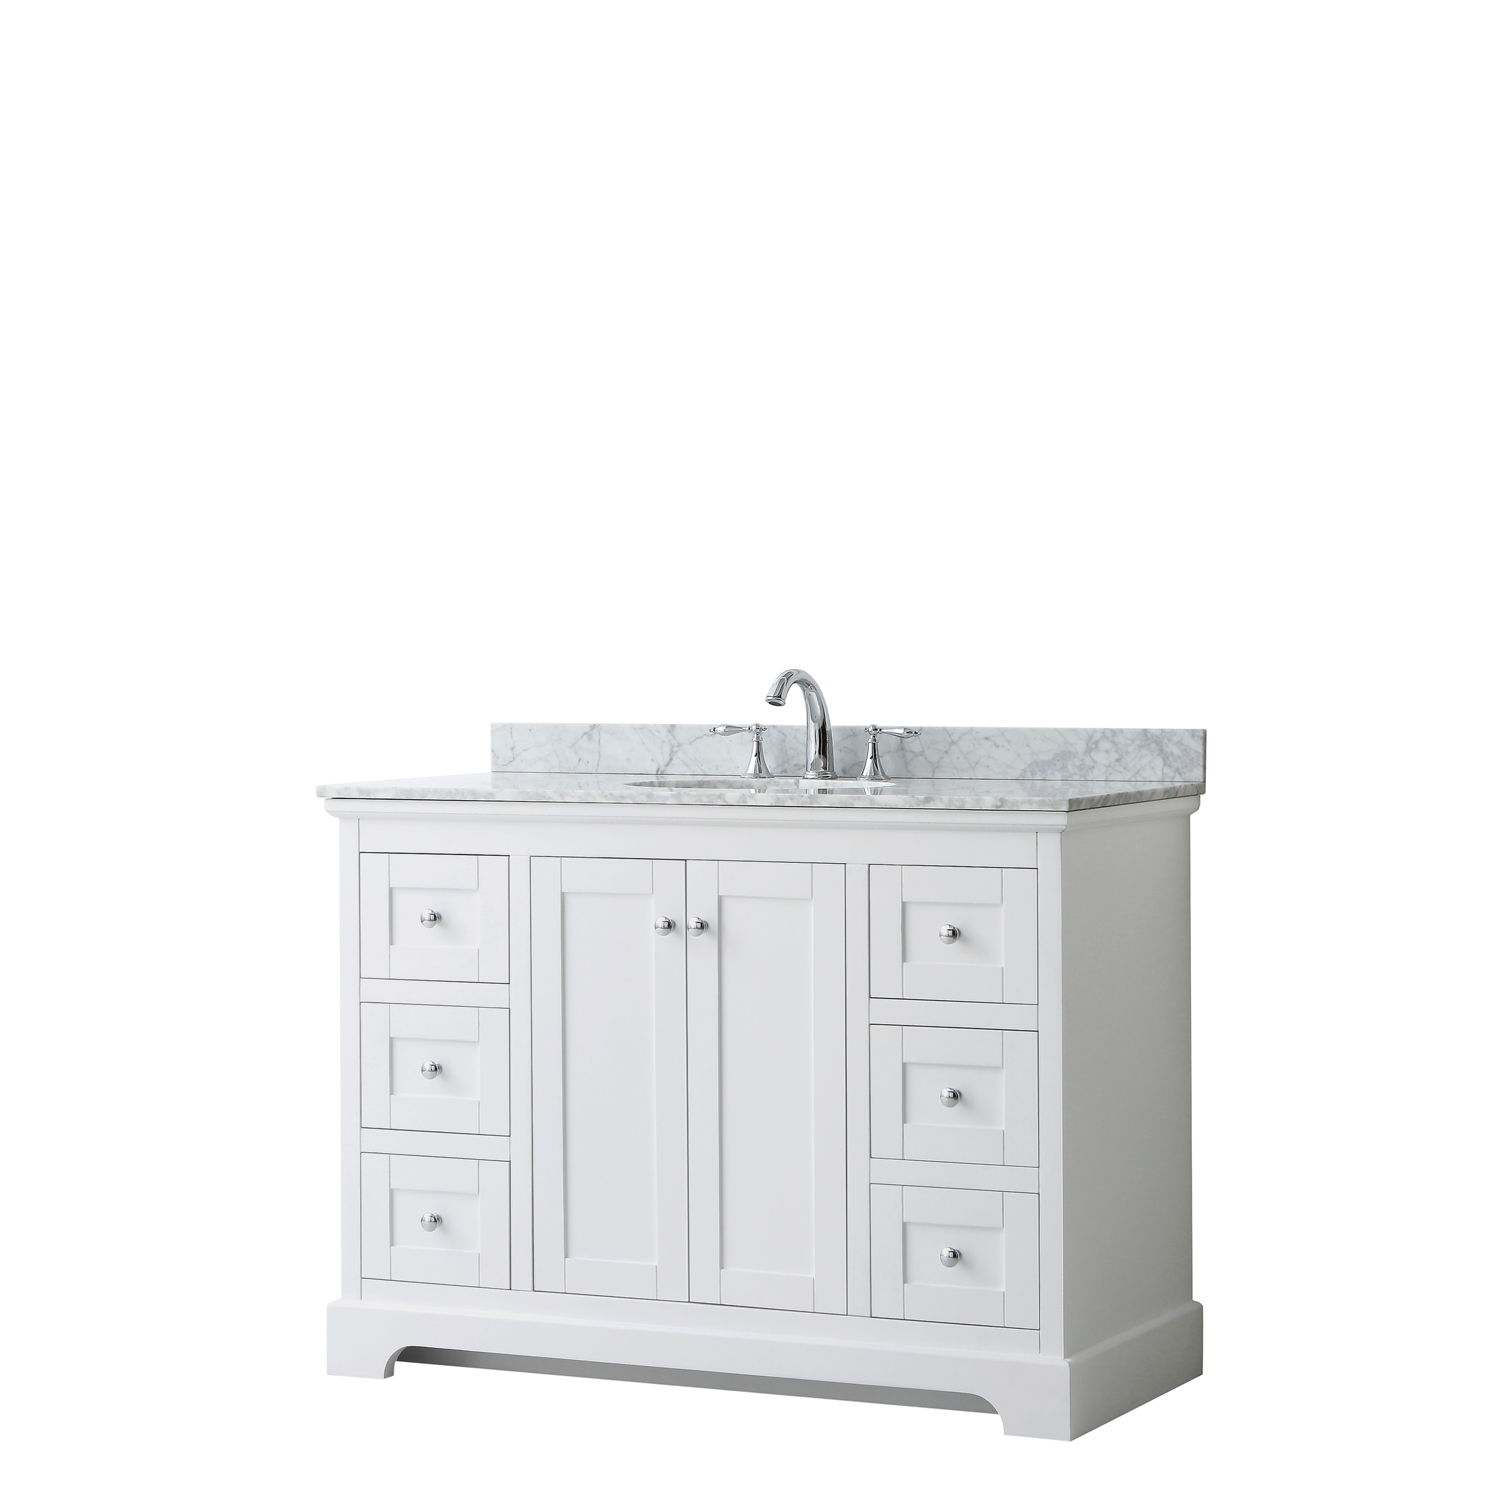 "48"" Single Bathroom Vanity in White, No Countertop, No Sink, and No Mirror"